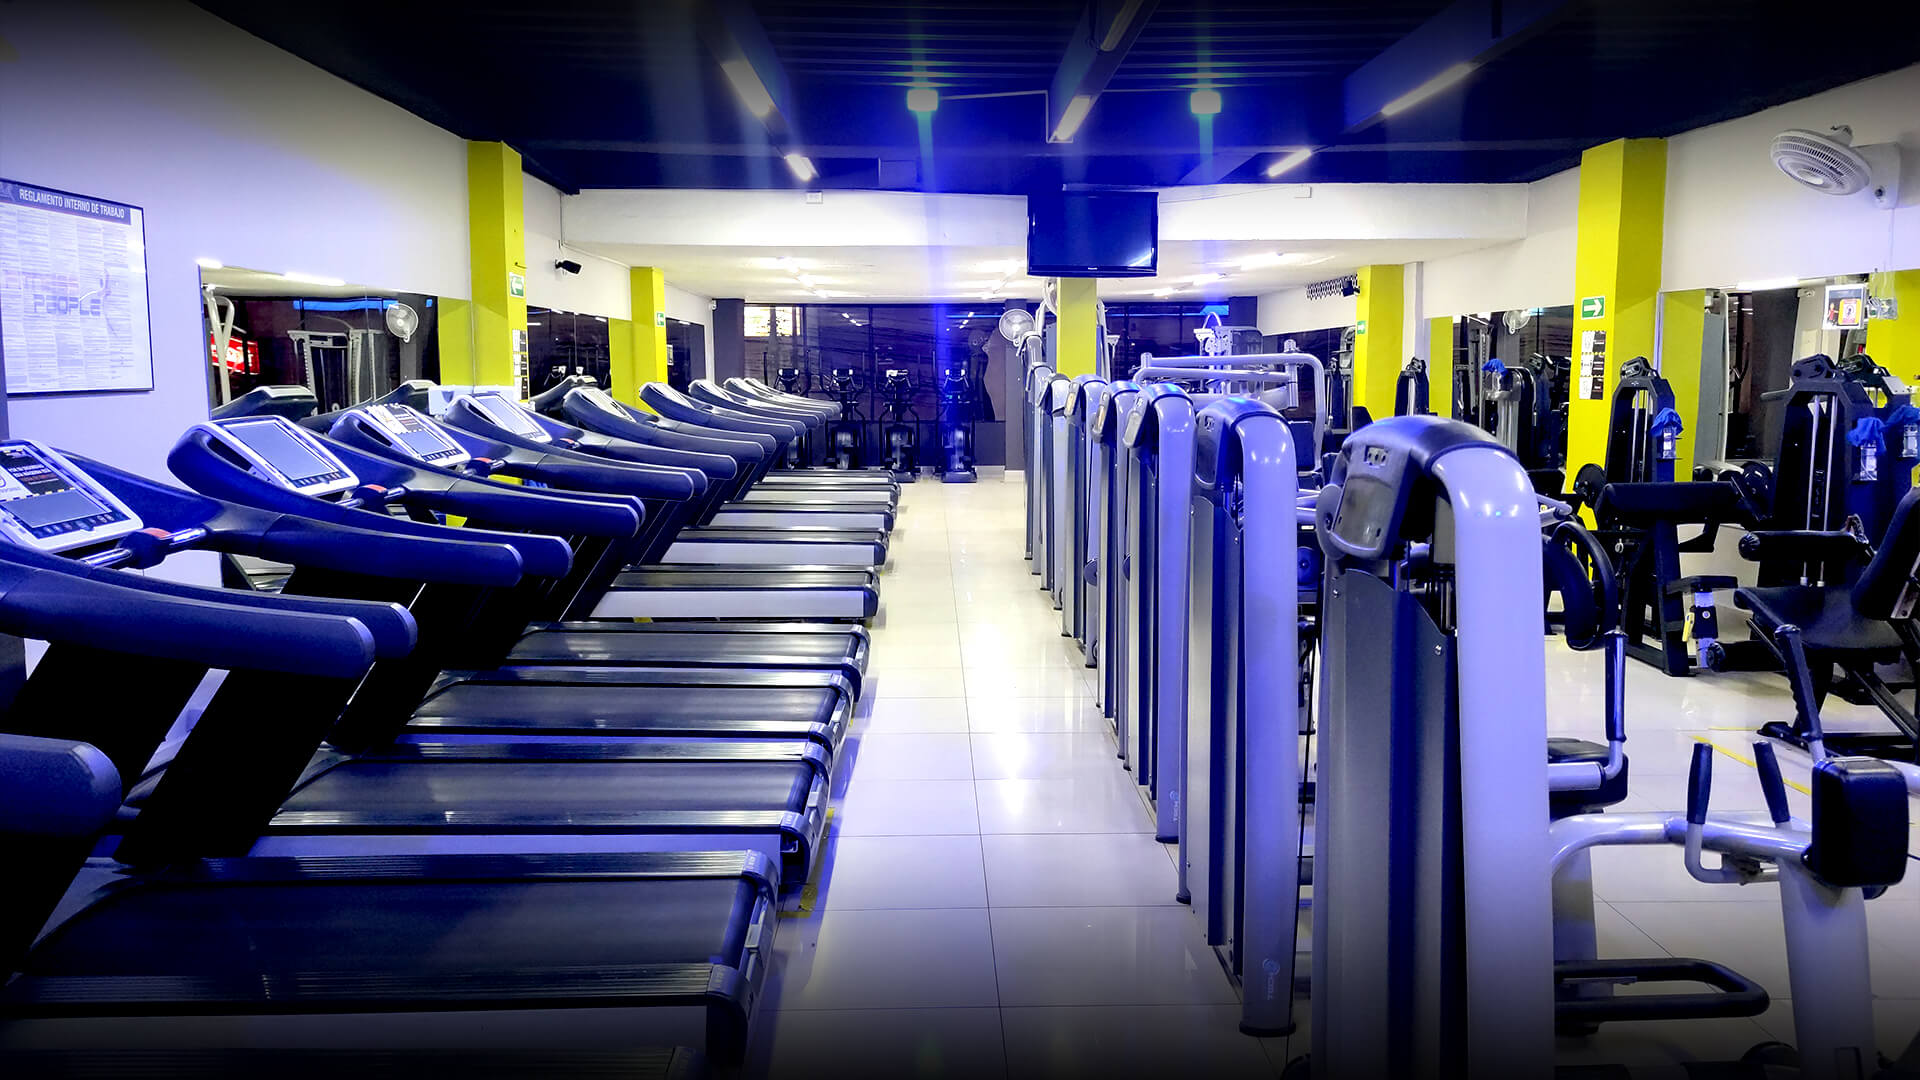 cañaveral-central-sede-fitness-people-cañ1